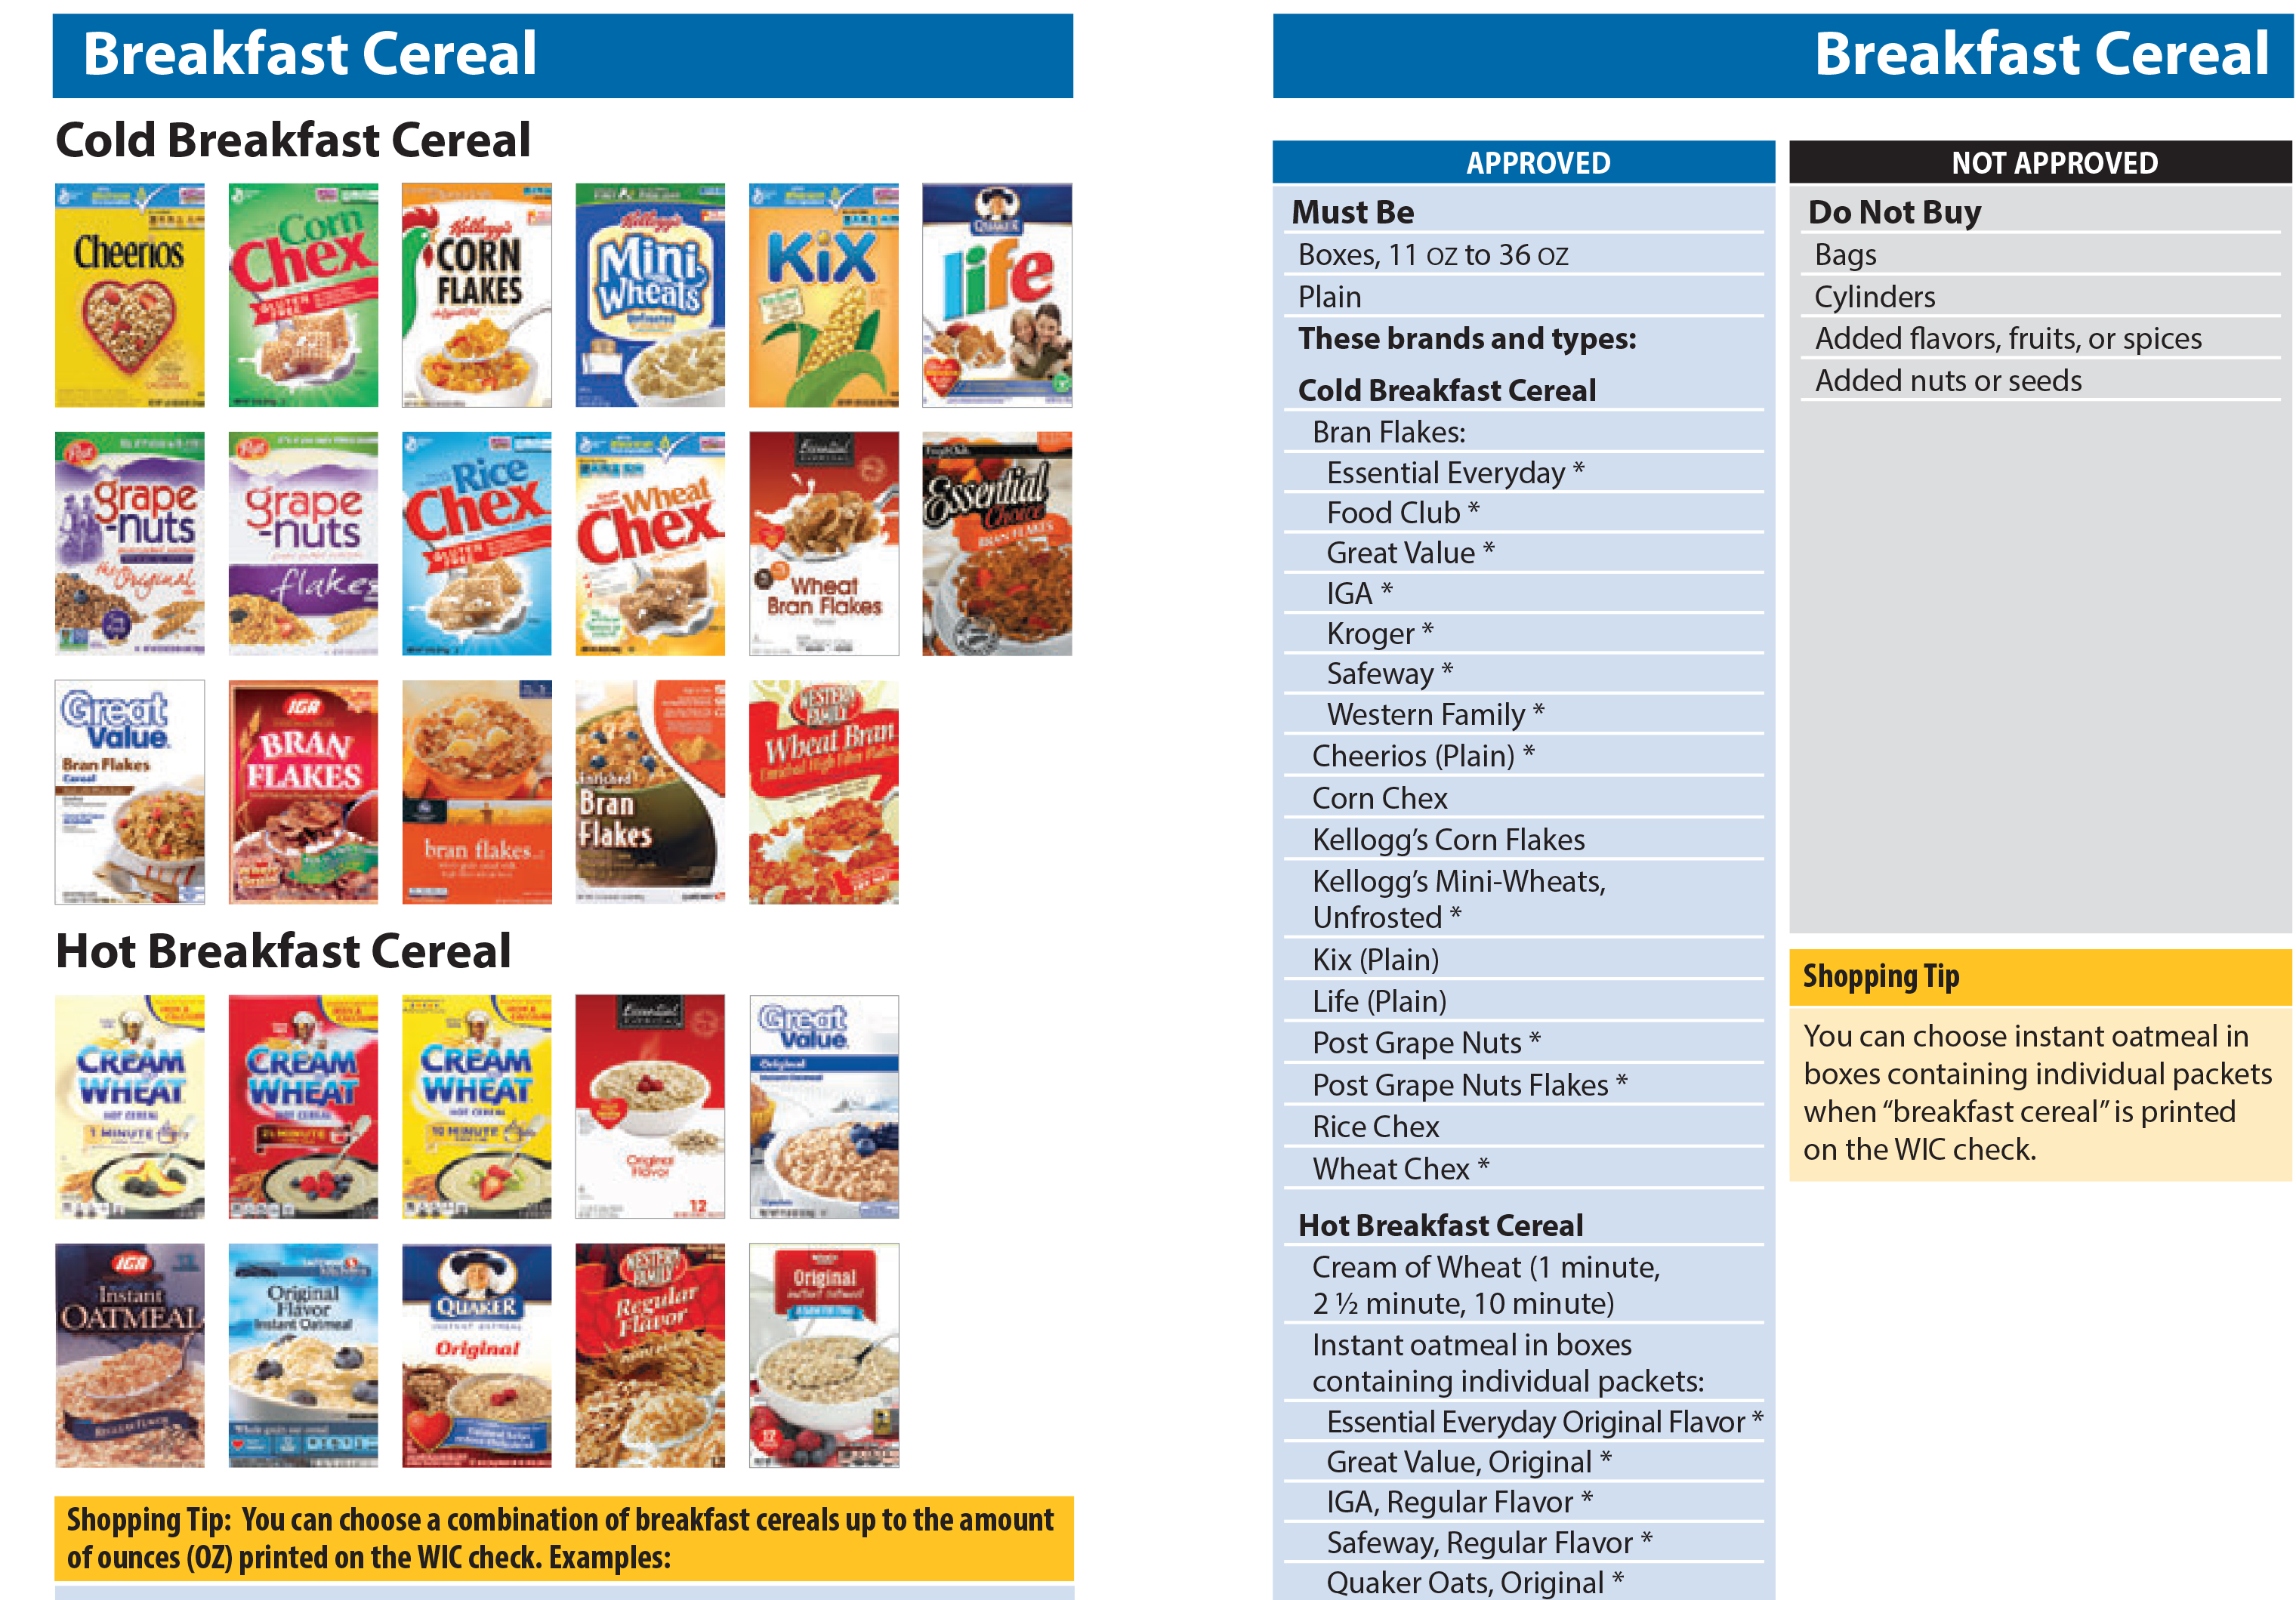 WIC Shopping Guide - Breakfast Cereal